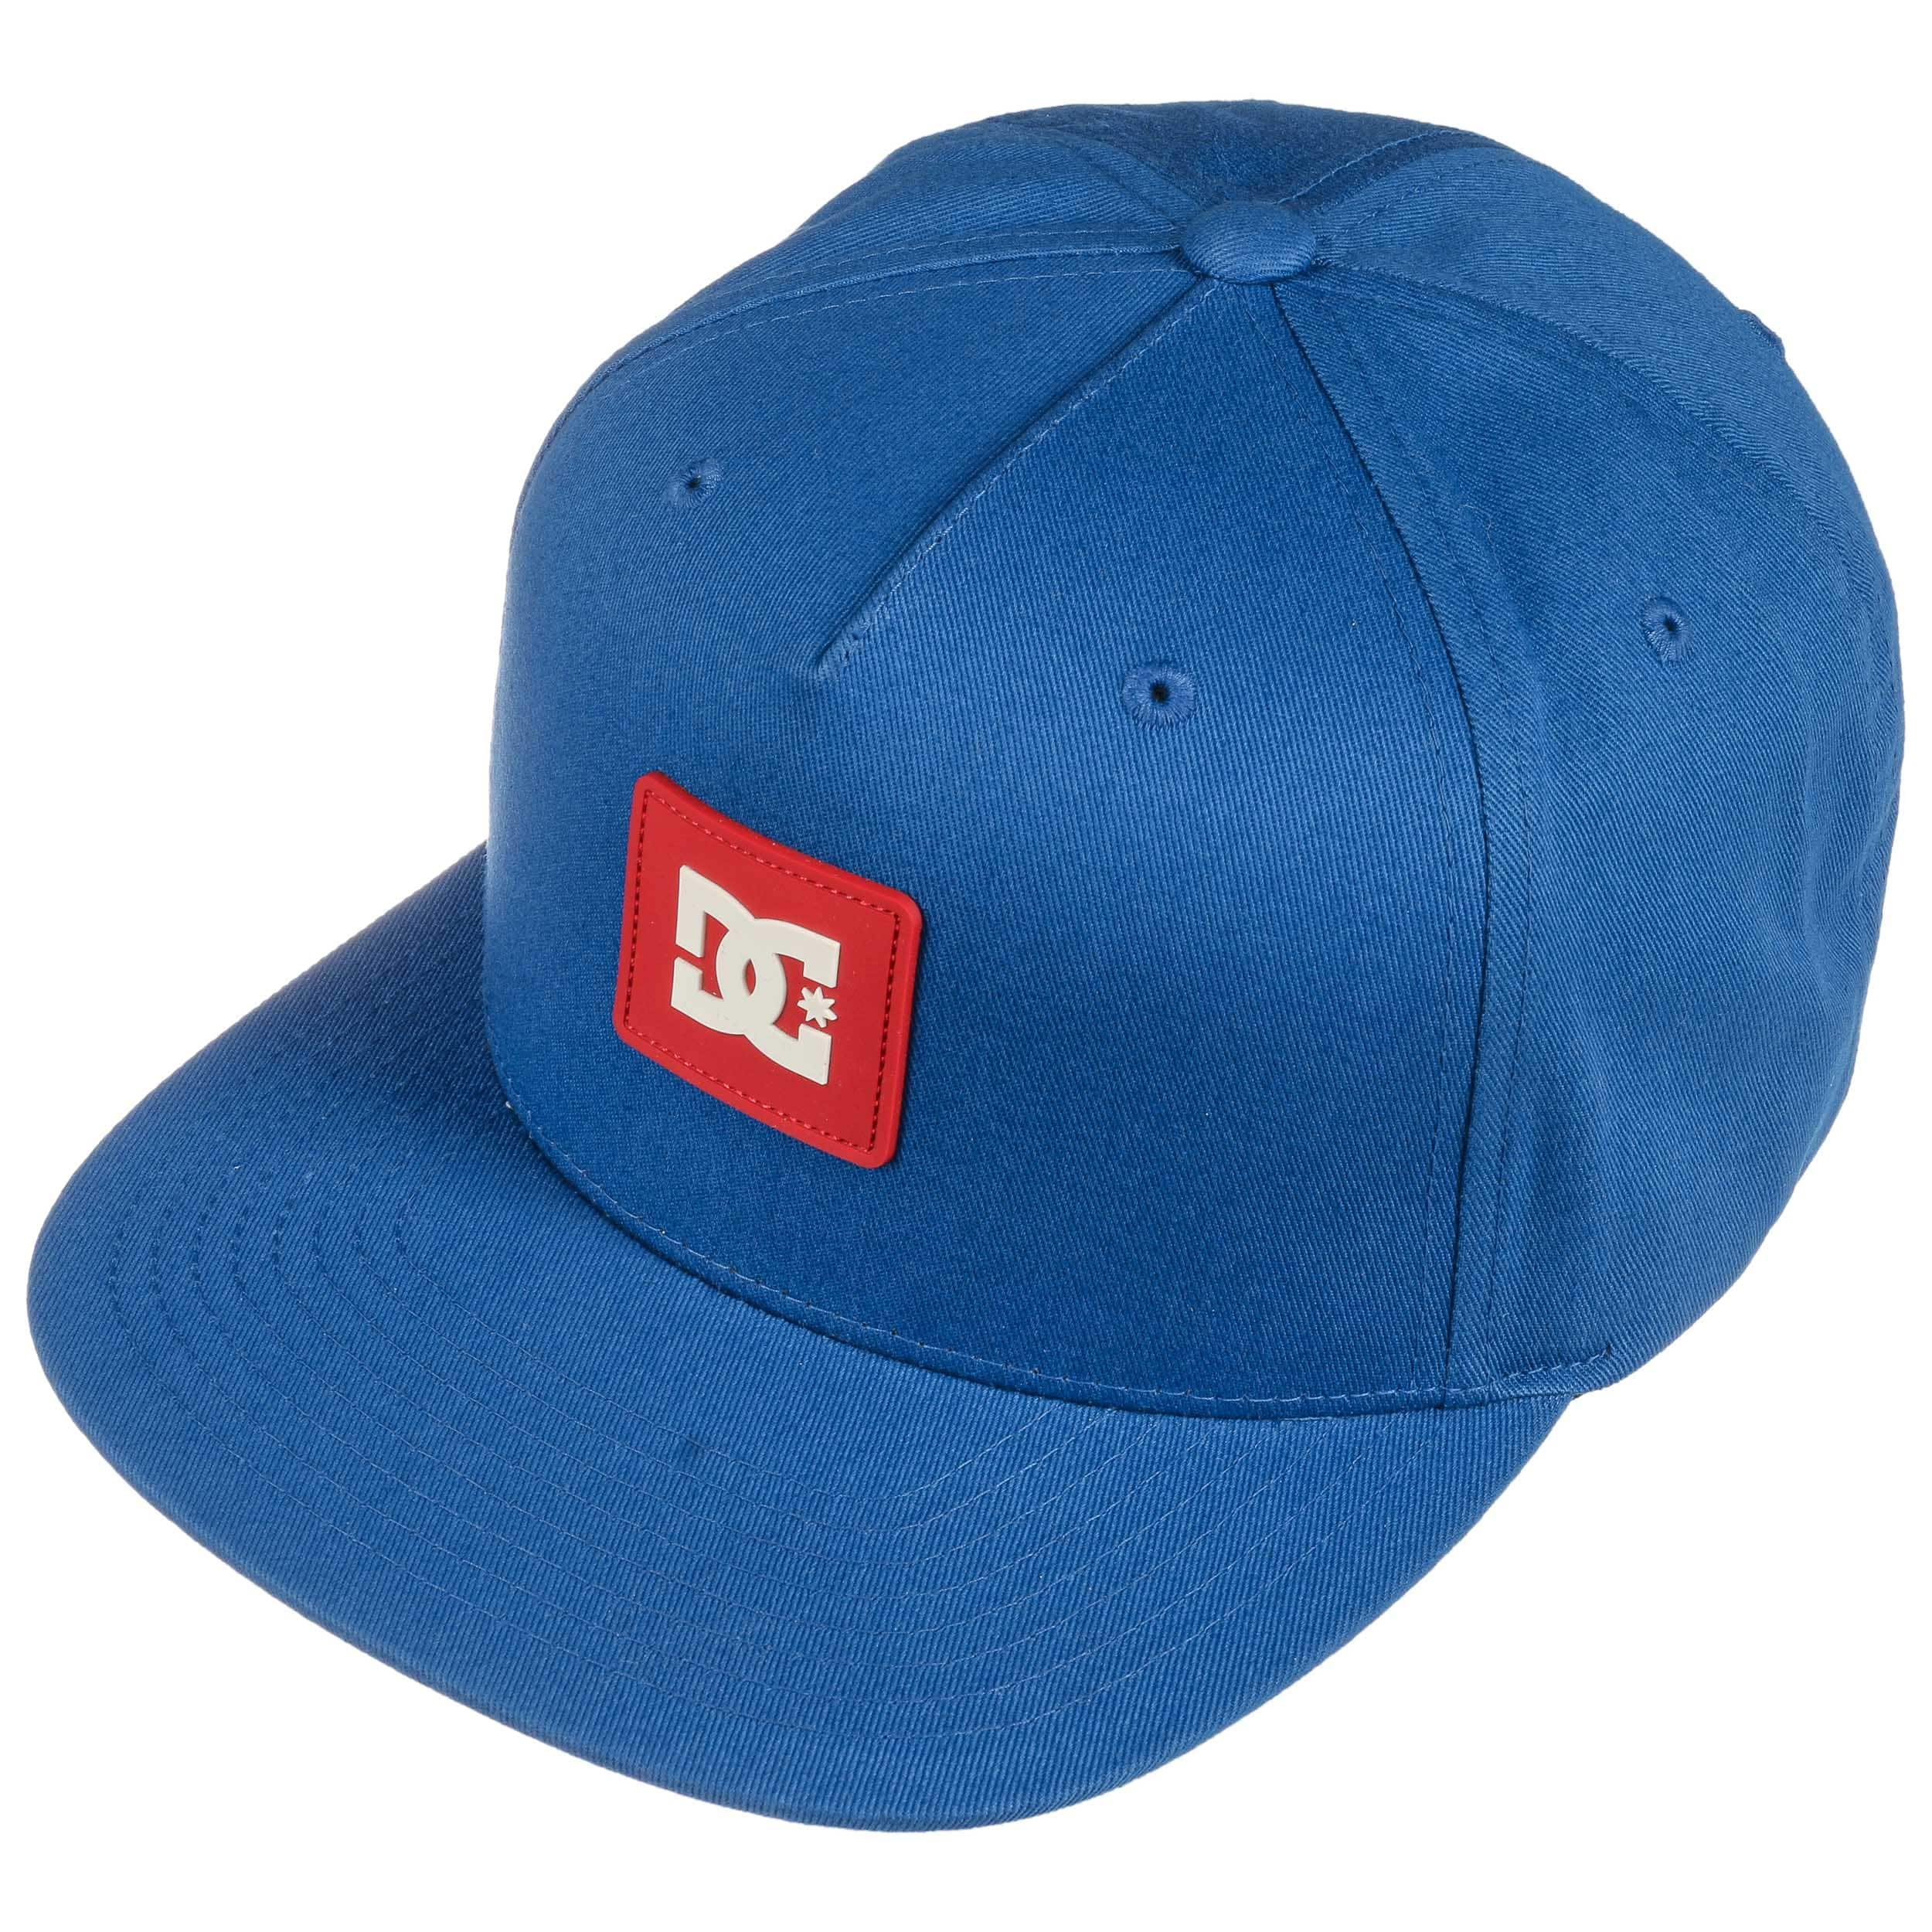 7b997cf2c07 ... Snapdoodle Snapback Cap by DC Shoes Co - royal-blue 1 ...